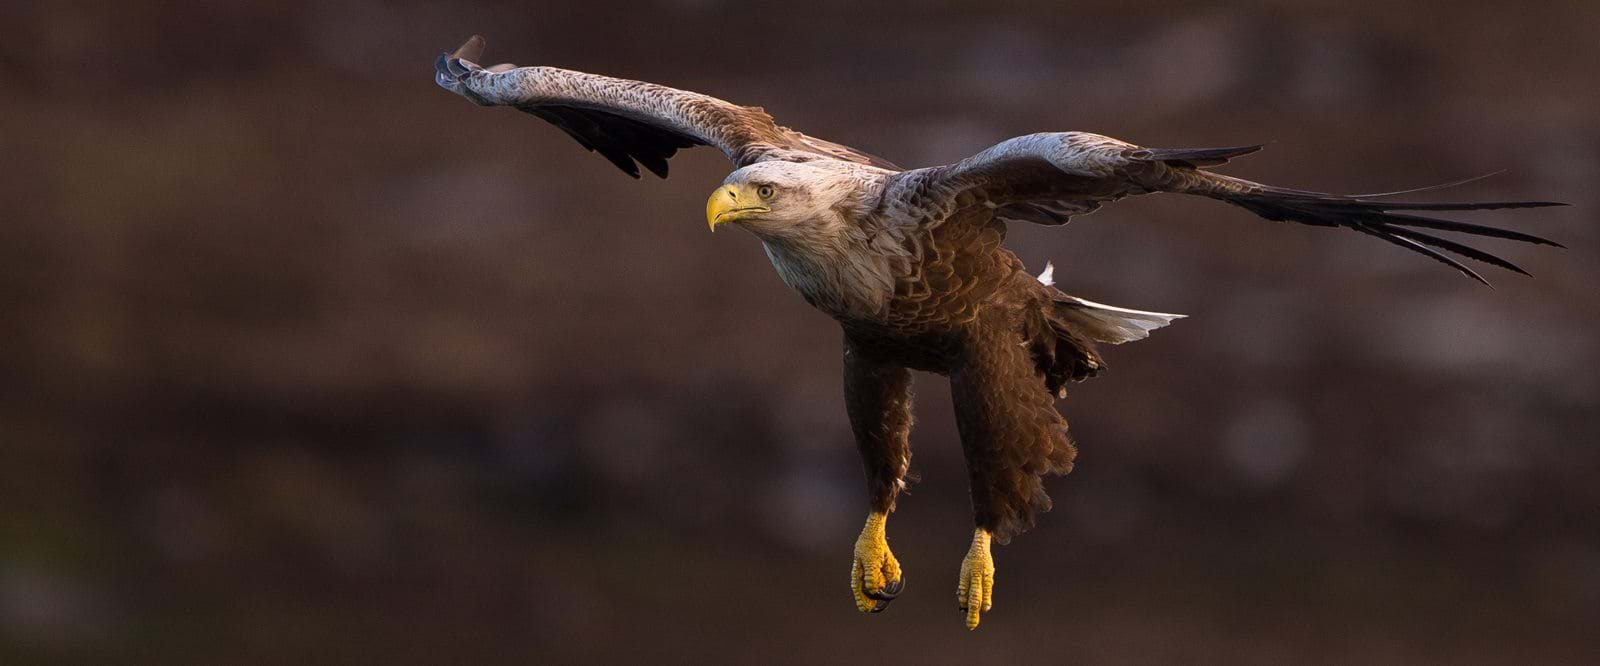 sea eagle, eagle, norway,